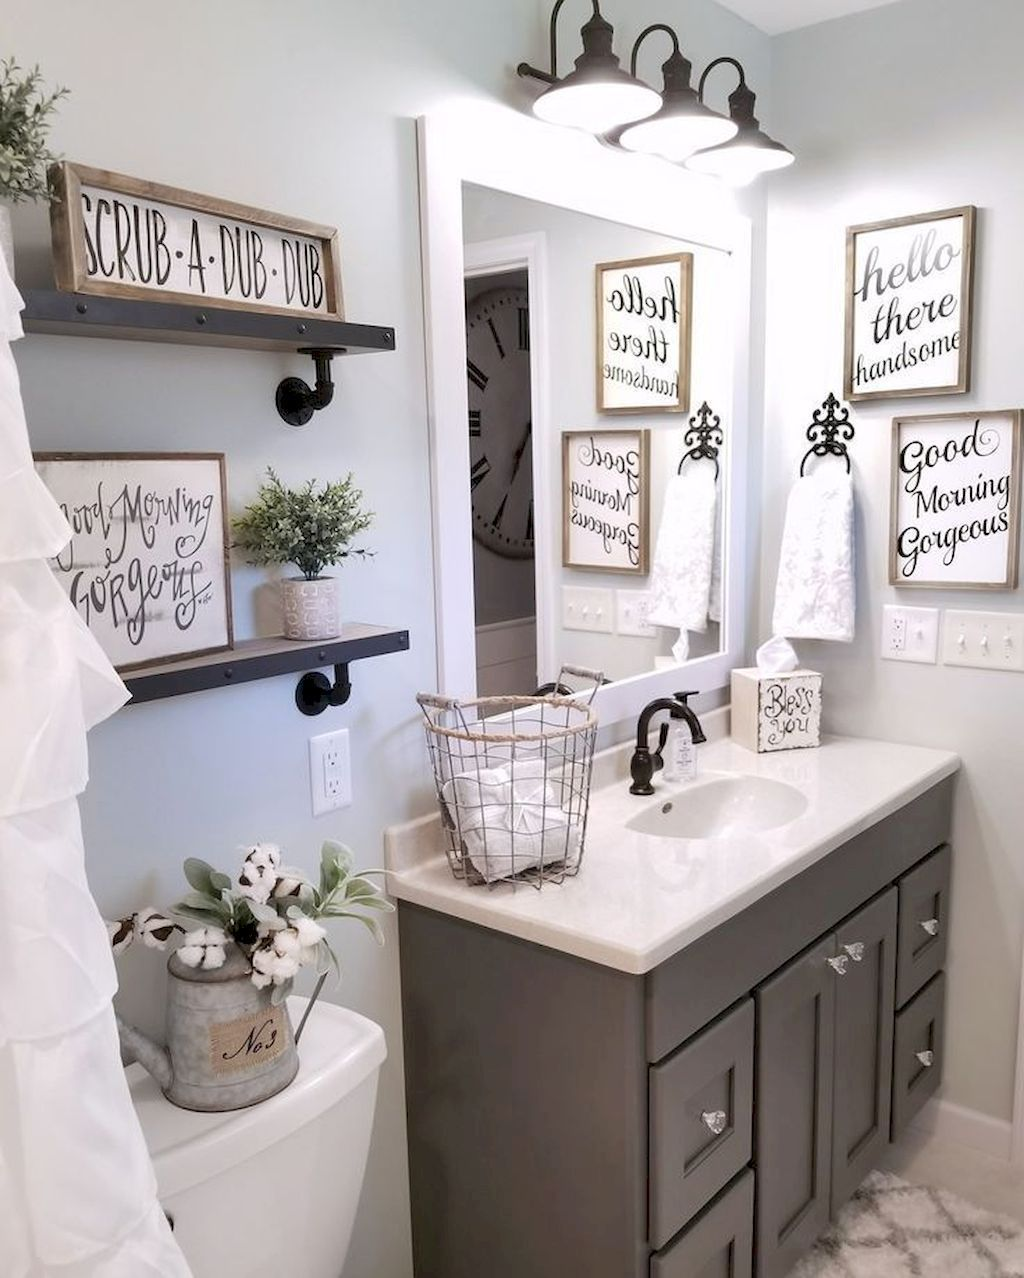 Rustic Farmhouse Master Bathroom Remodel Ideas (61) | For the Home ...